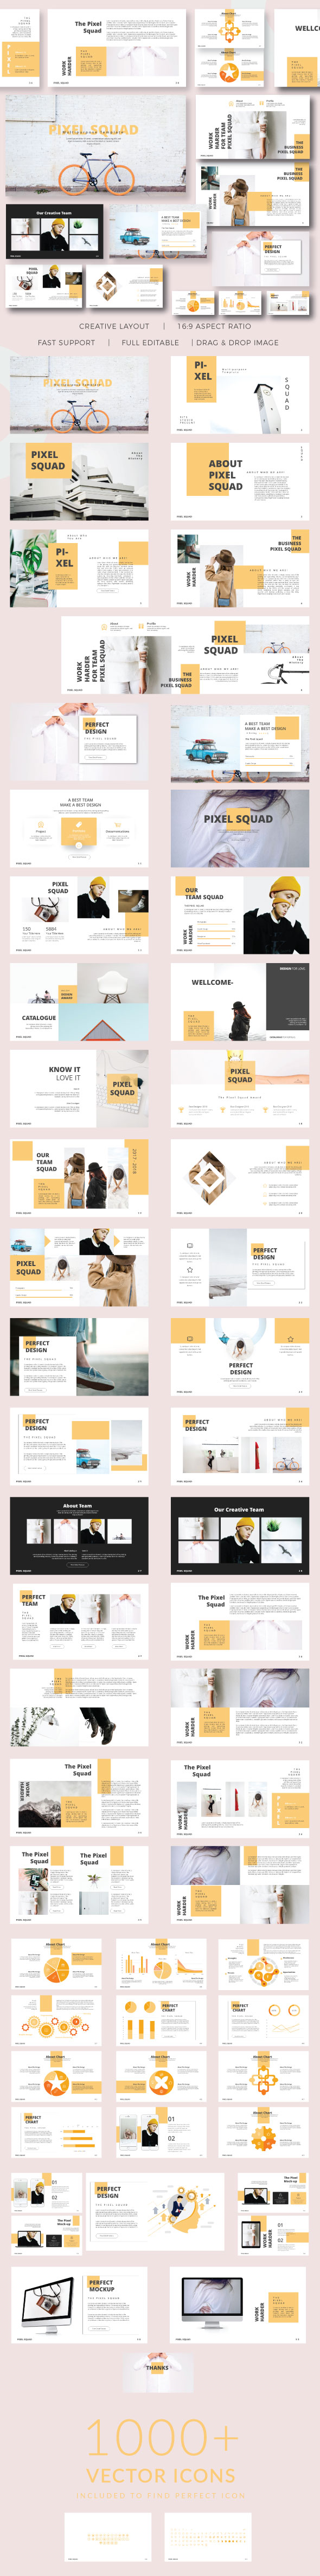 Pixma Squad Keynote Presentation - Business PowerPoint Templates